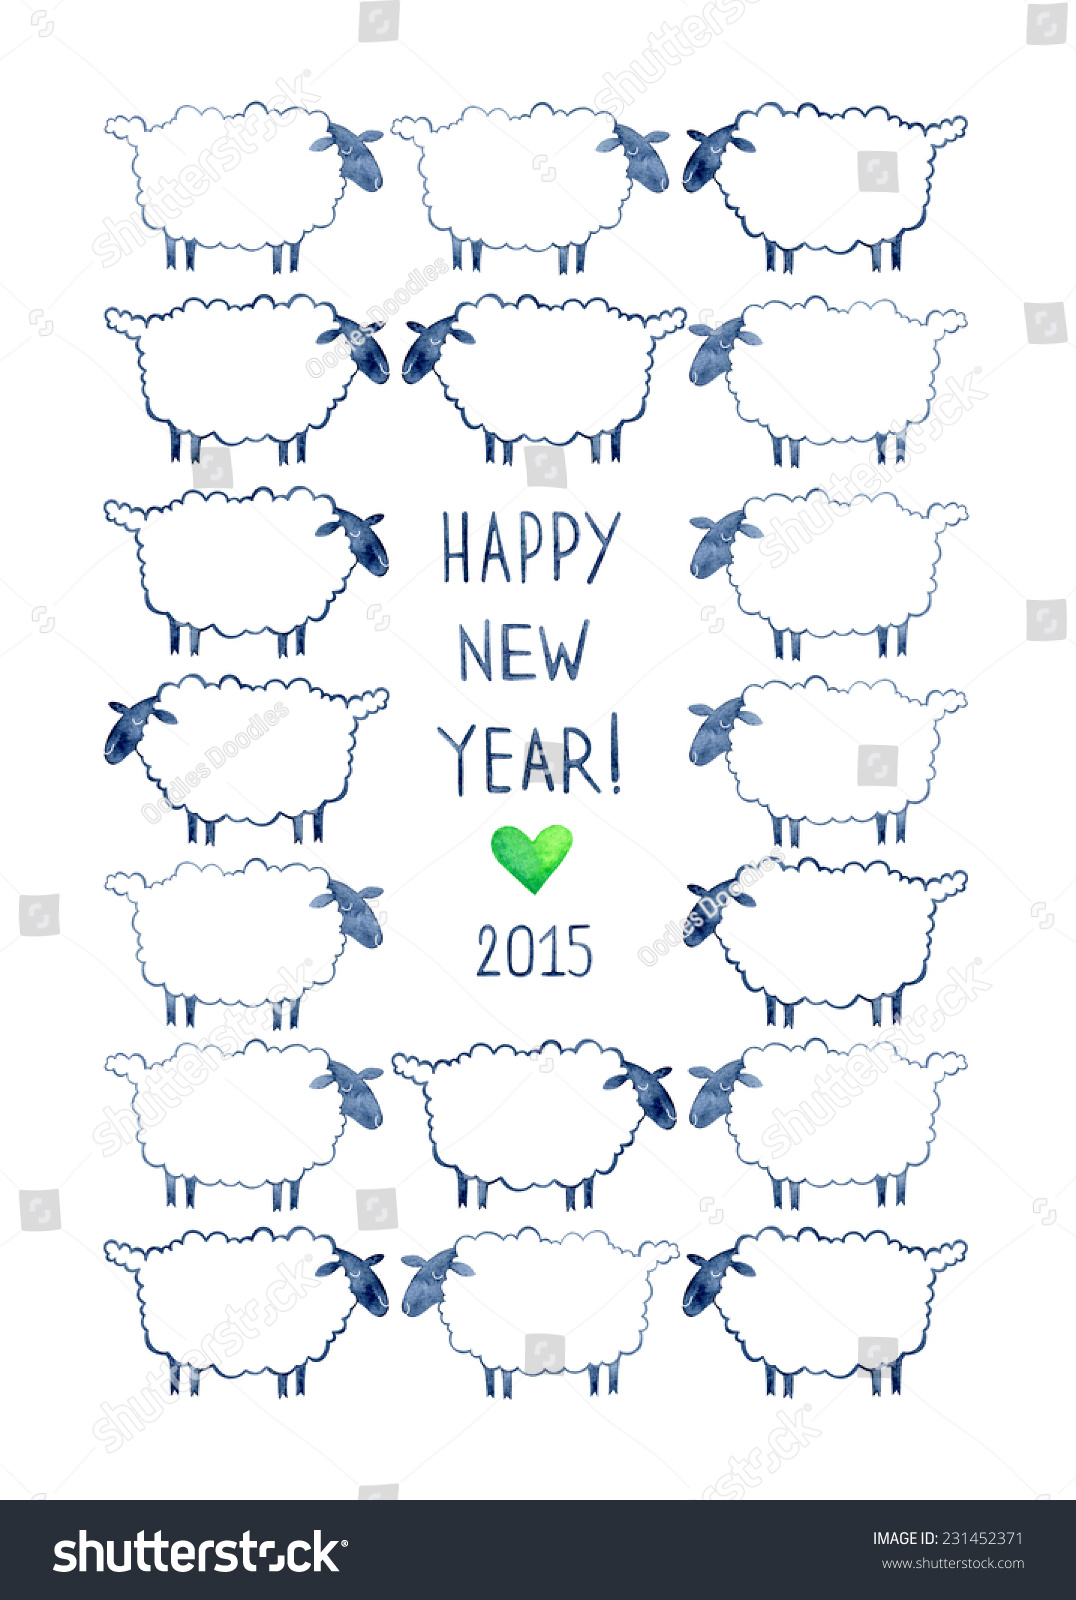 New year watercolor greeting card sheep stock illustration new year watercolor greeting card with sheep symbol of 2015 year greeting watercolor card kristyandbryce Image collections